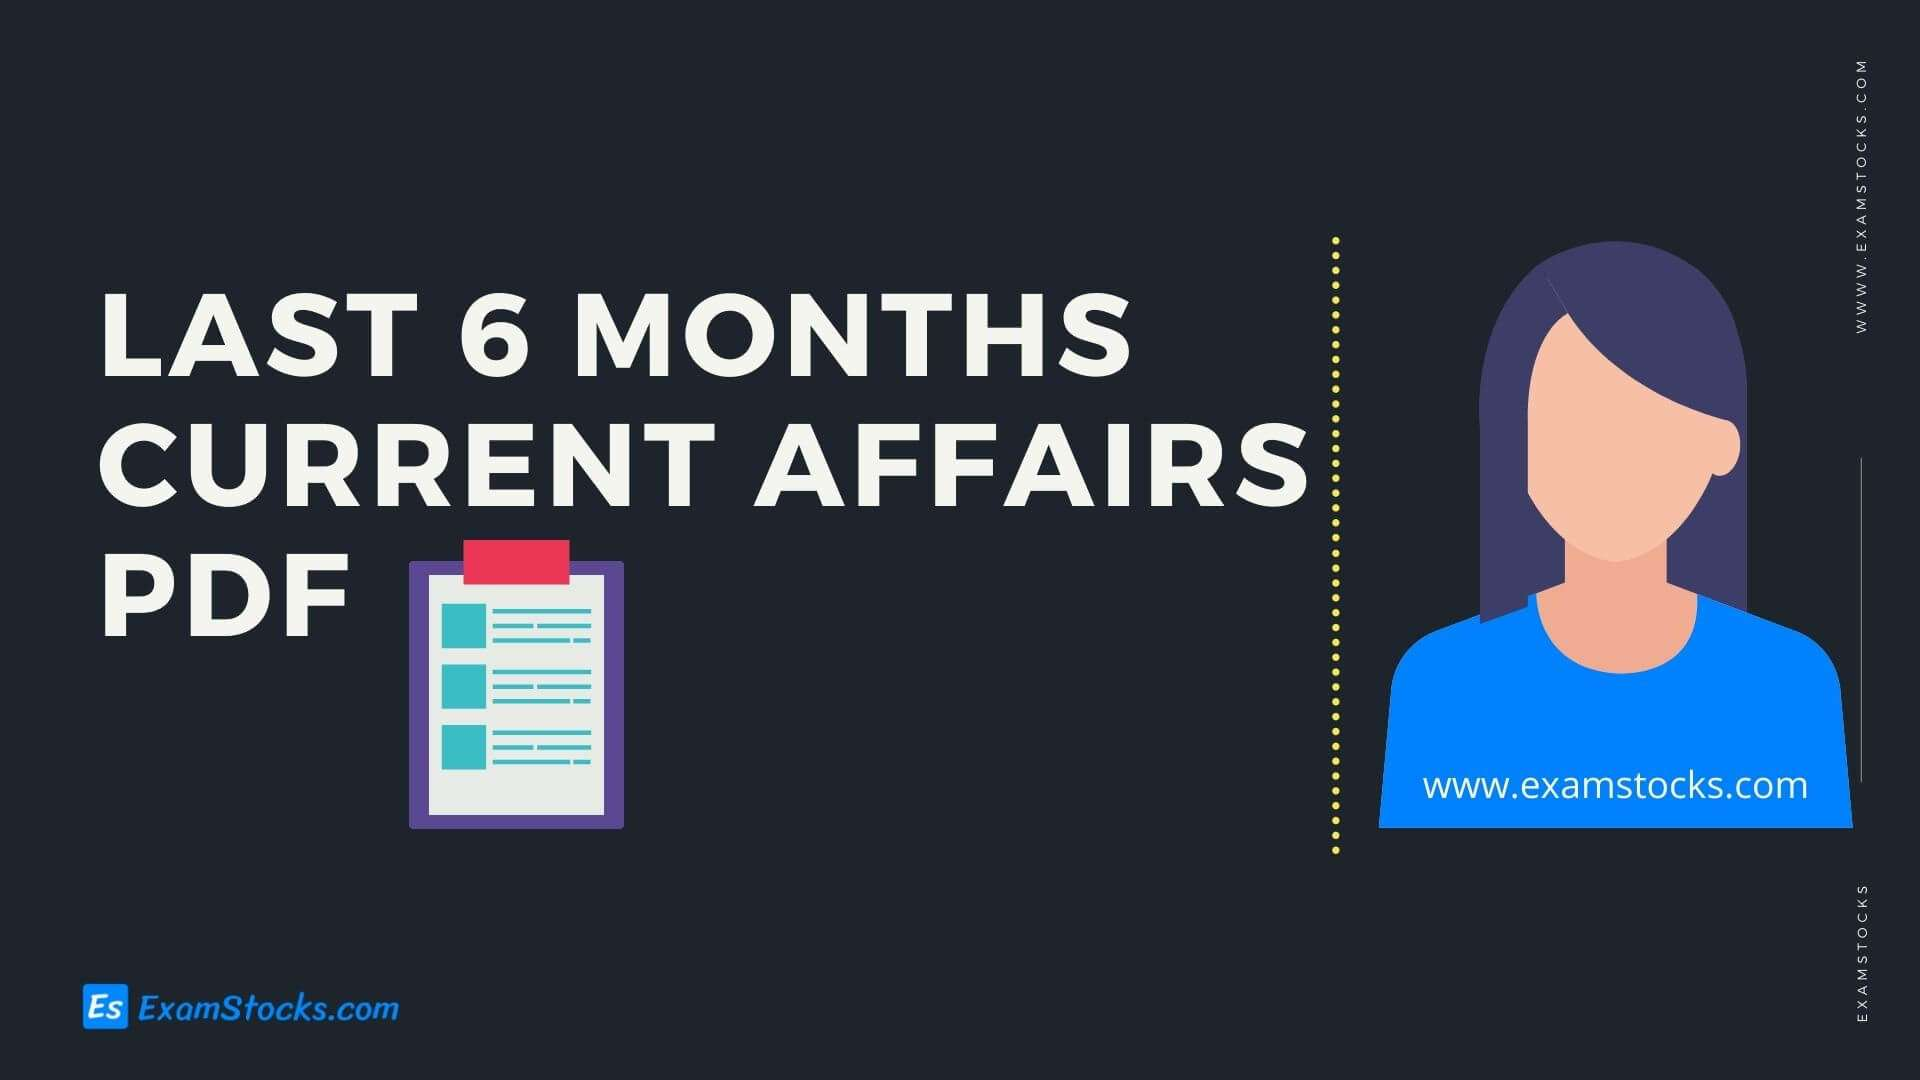 Last 6 Months Current Affairs 2020 PDF Free Download